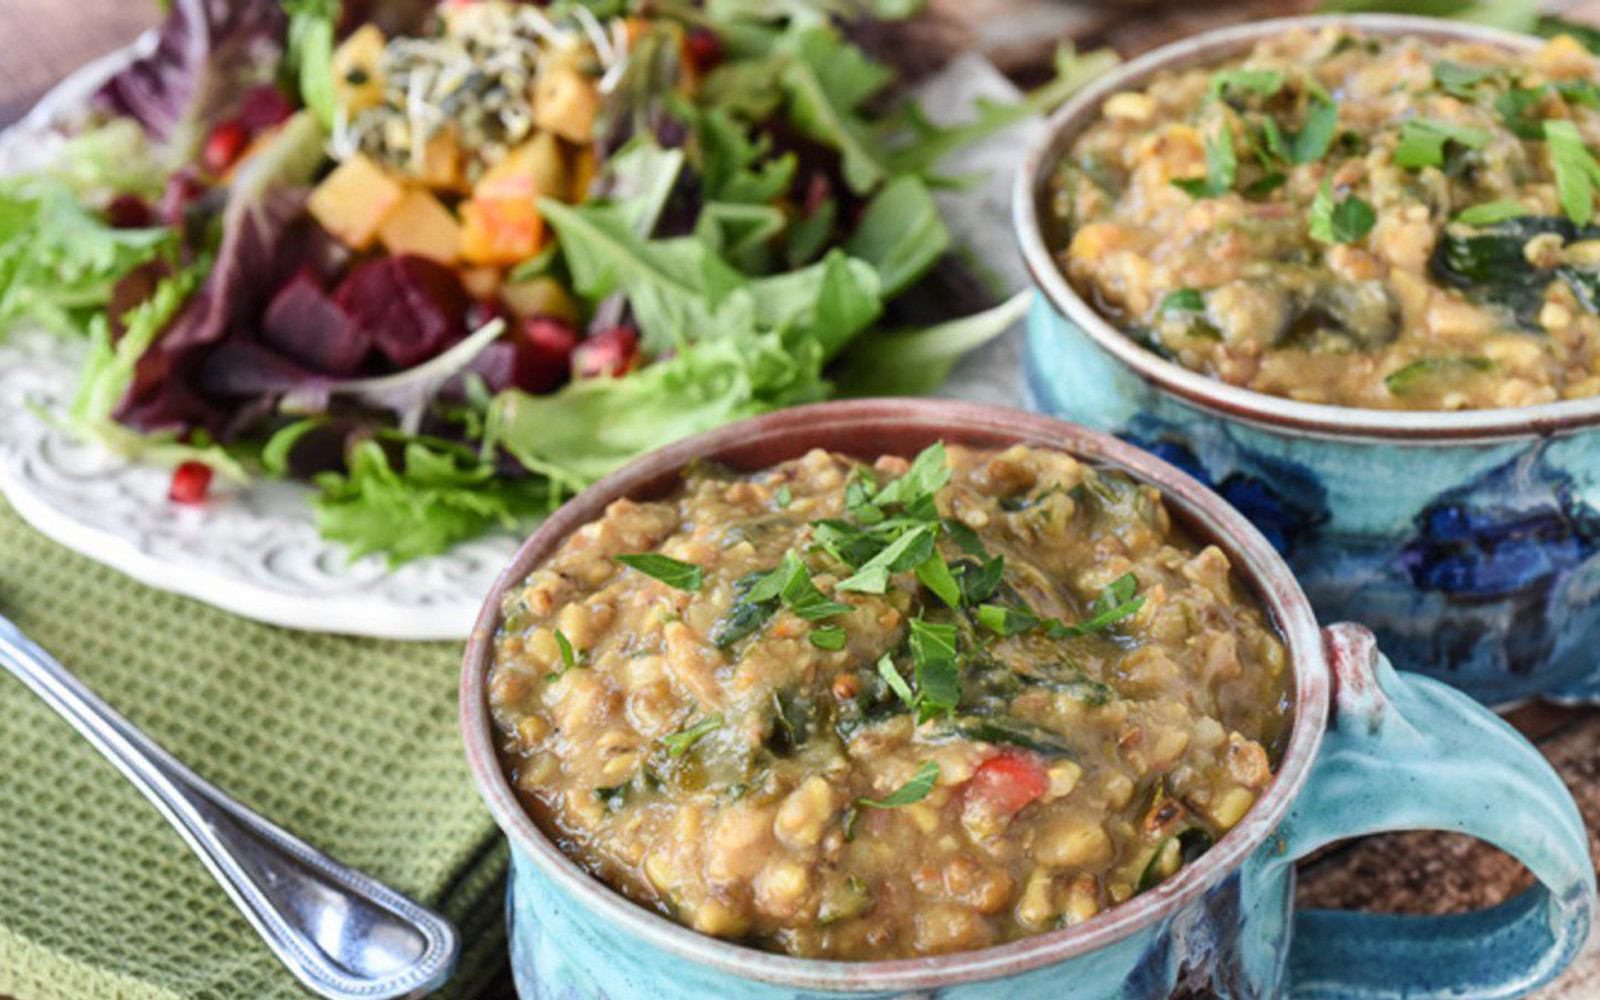 Vegan Kitchari: Comforting Indian Vegetable Stew with salad